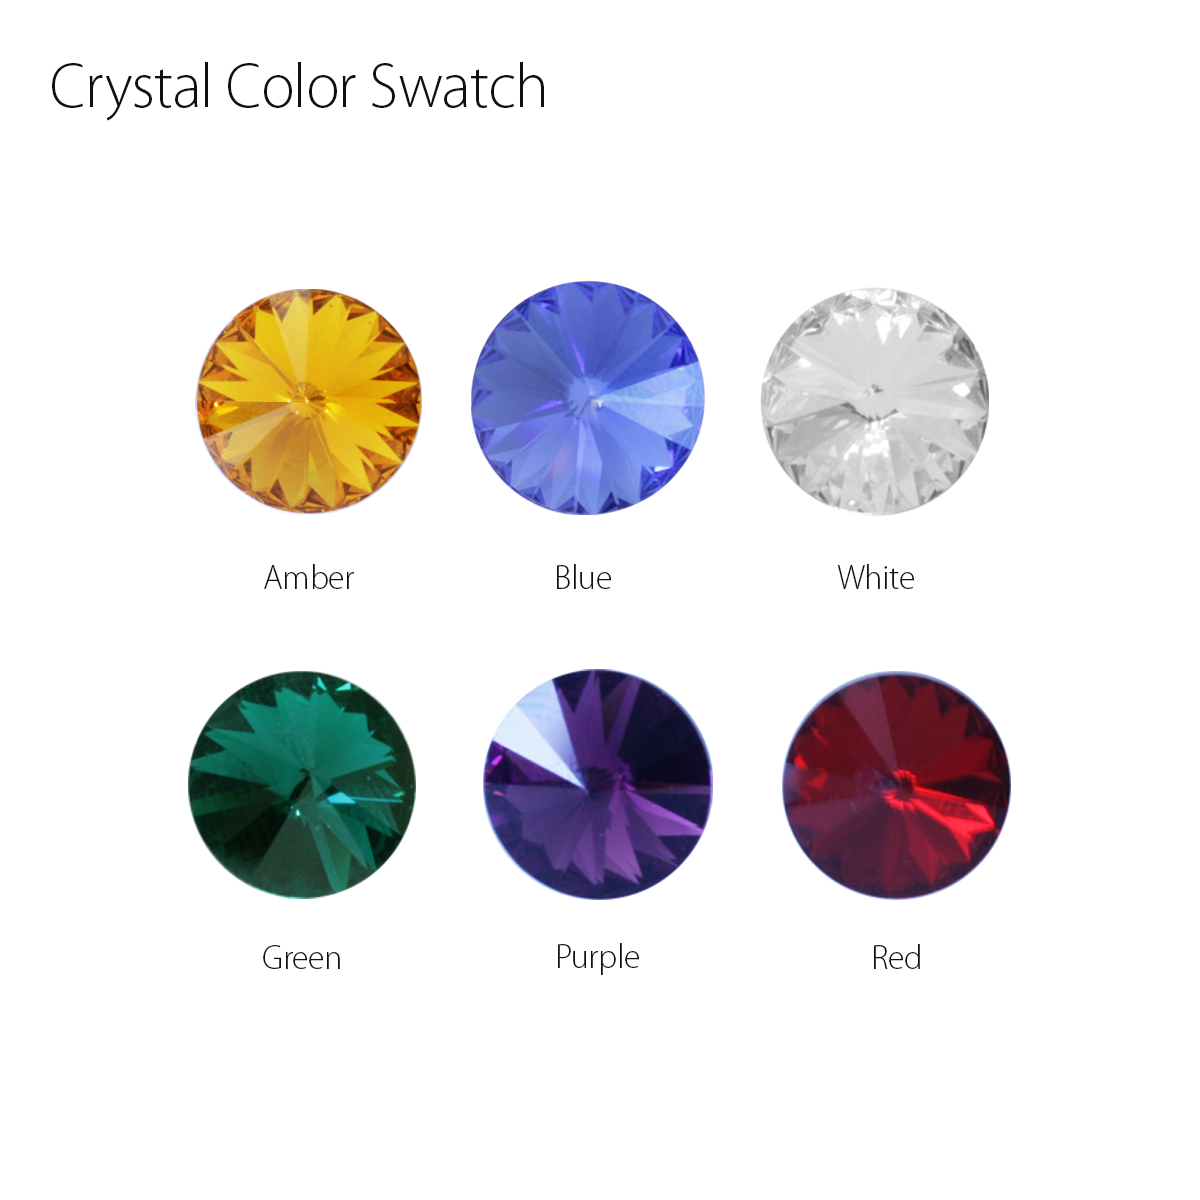 Crystal Color Swatch